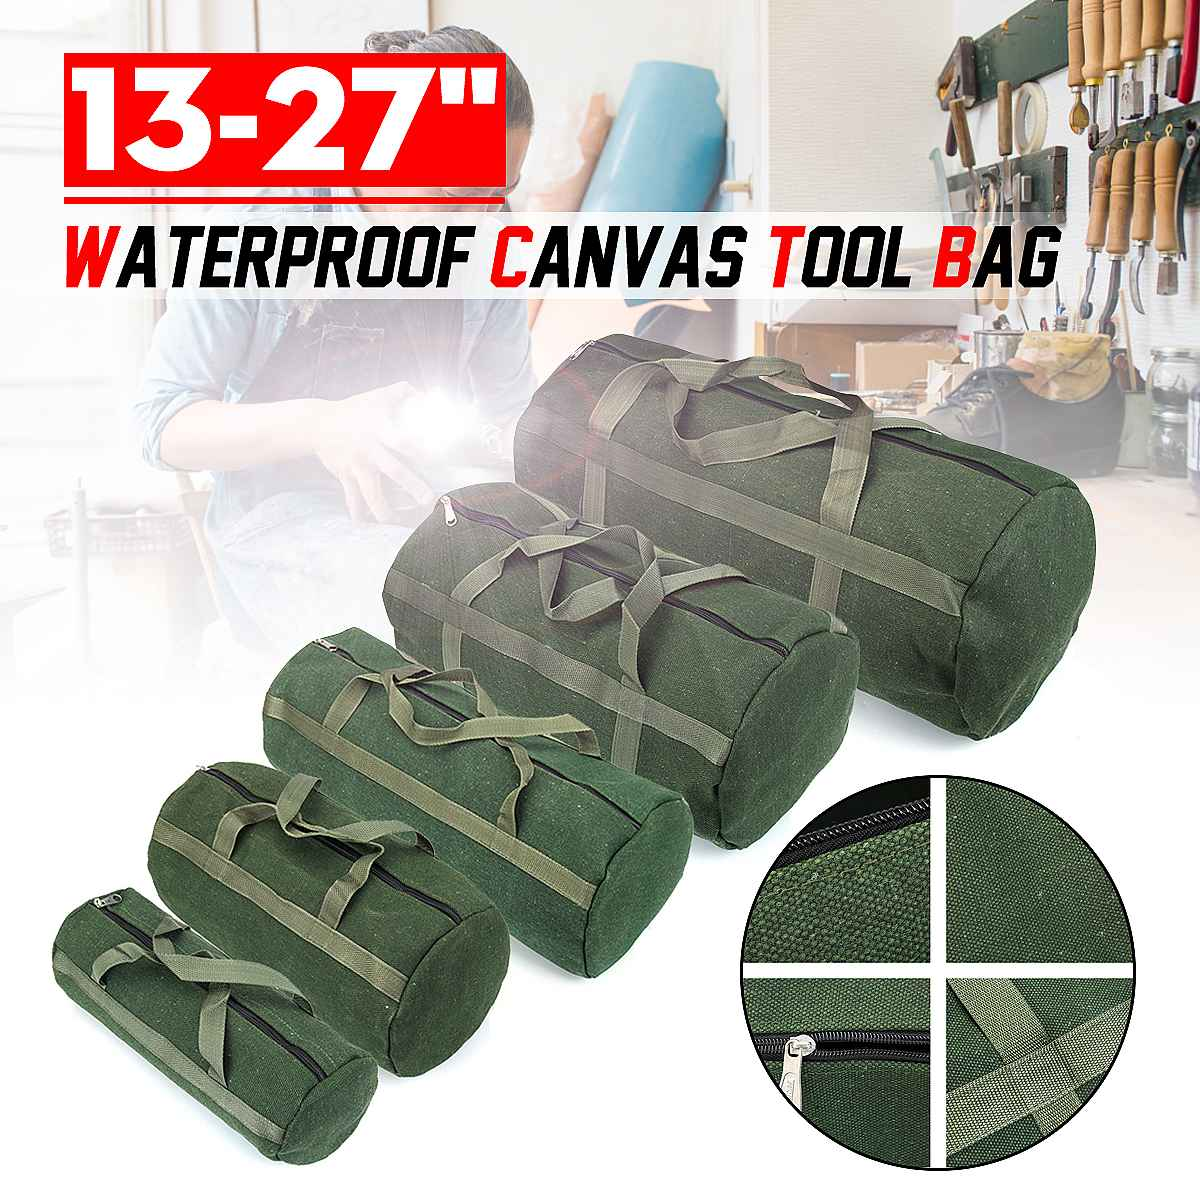 Multi-function Mechanics Tool Bag Waterproof Oxford Cloth Canvas Hand Toolbag Portable Electrician Shoulder Storage Zipper Bag